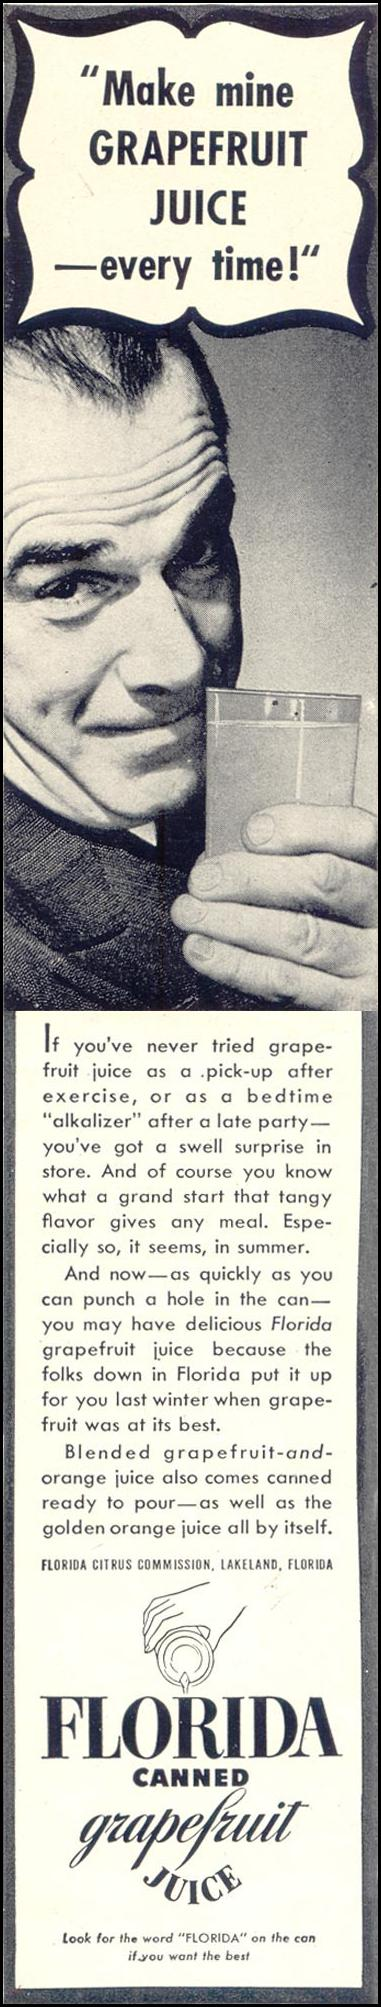 FLORIDA CANNED GRAPEFRUIT JUICE LIFE 07/24/1939 p. 73